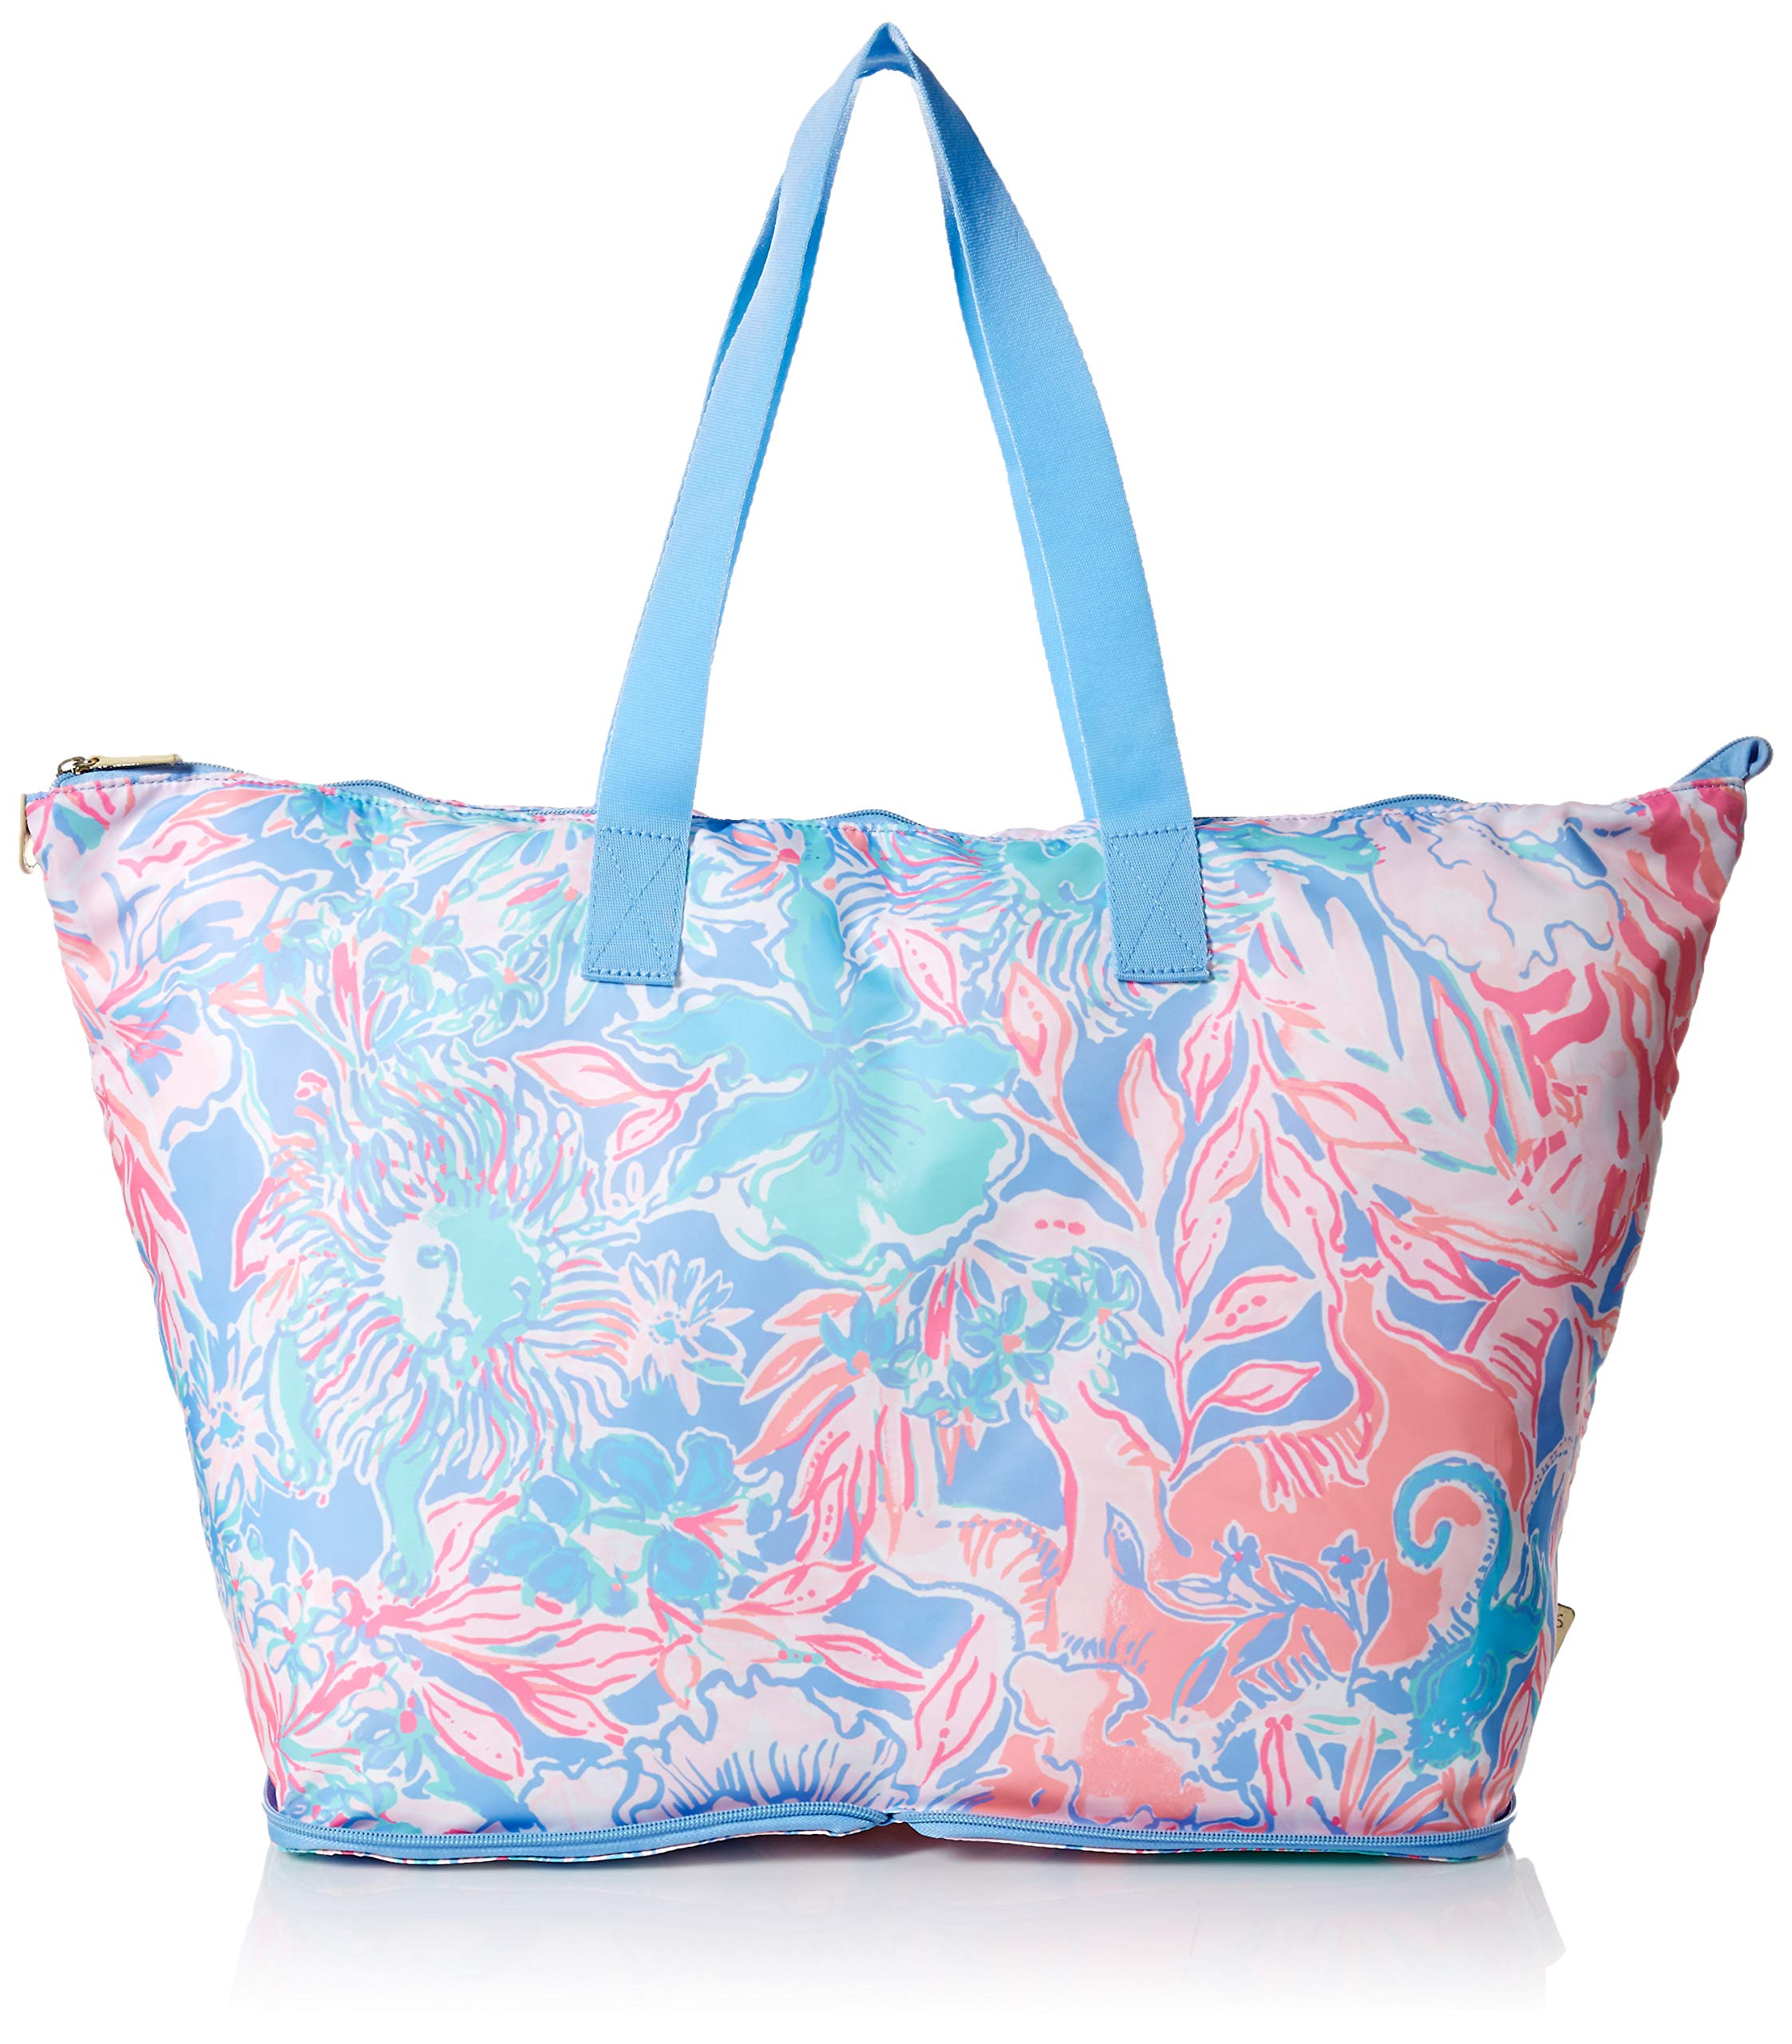 Lilly Pulitzer Women's Getaway Packable Tote, blue peri Viva La lilly, 1 SZ